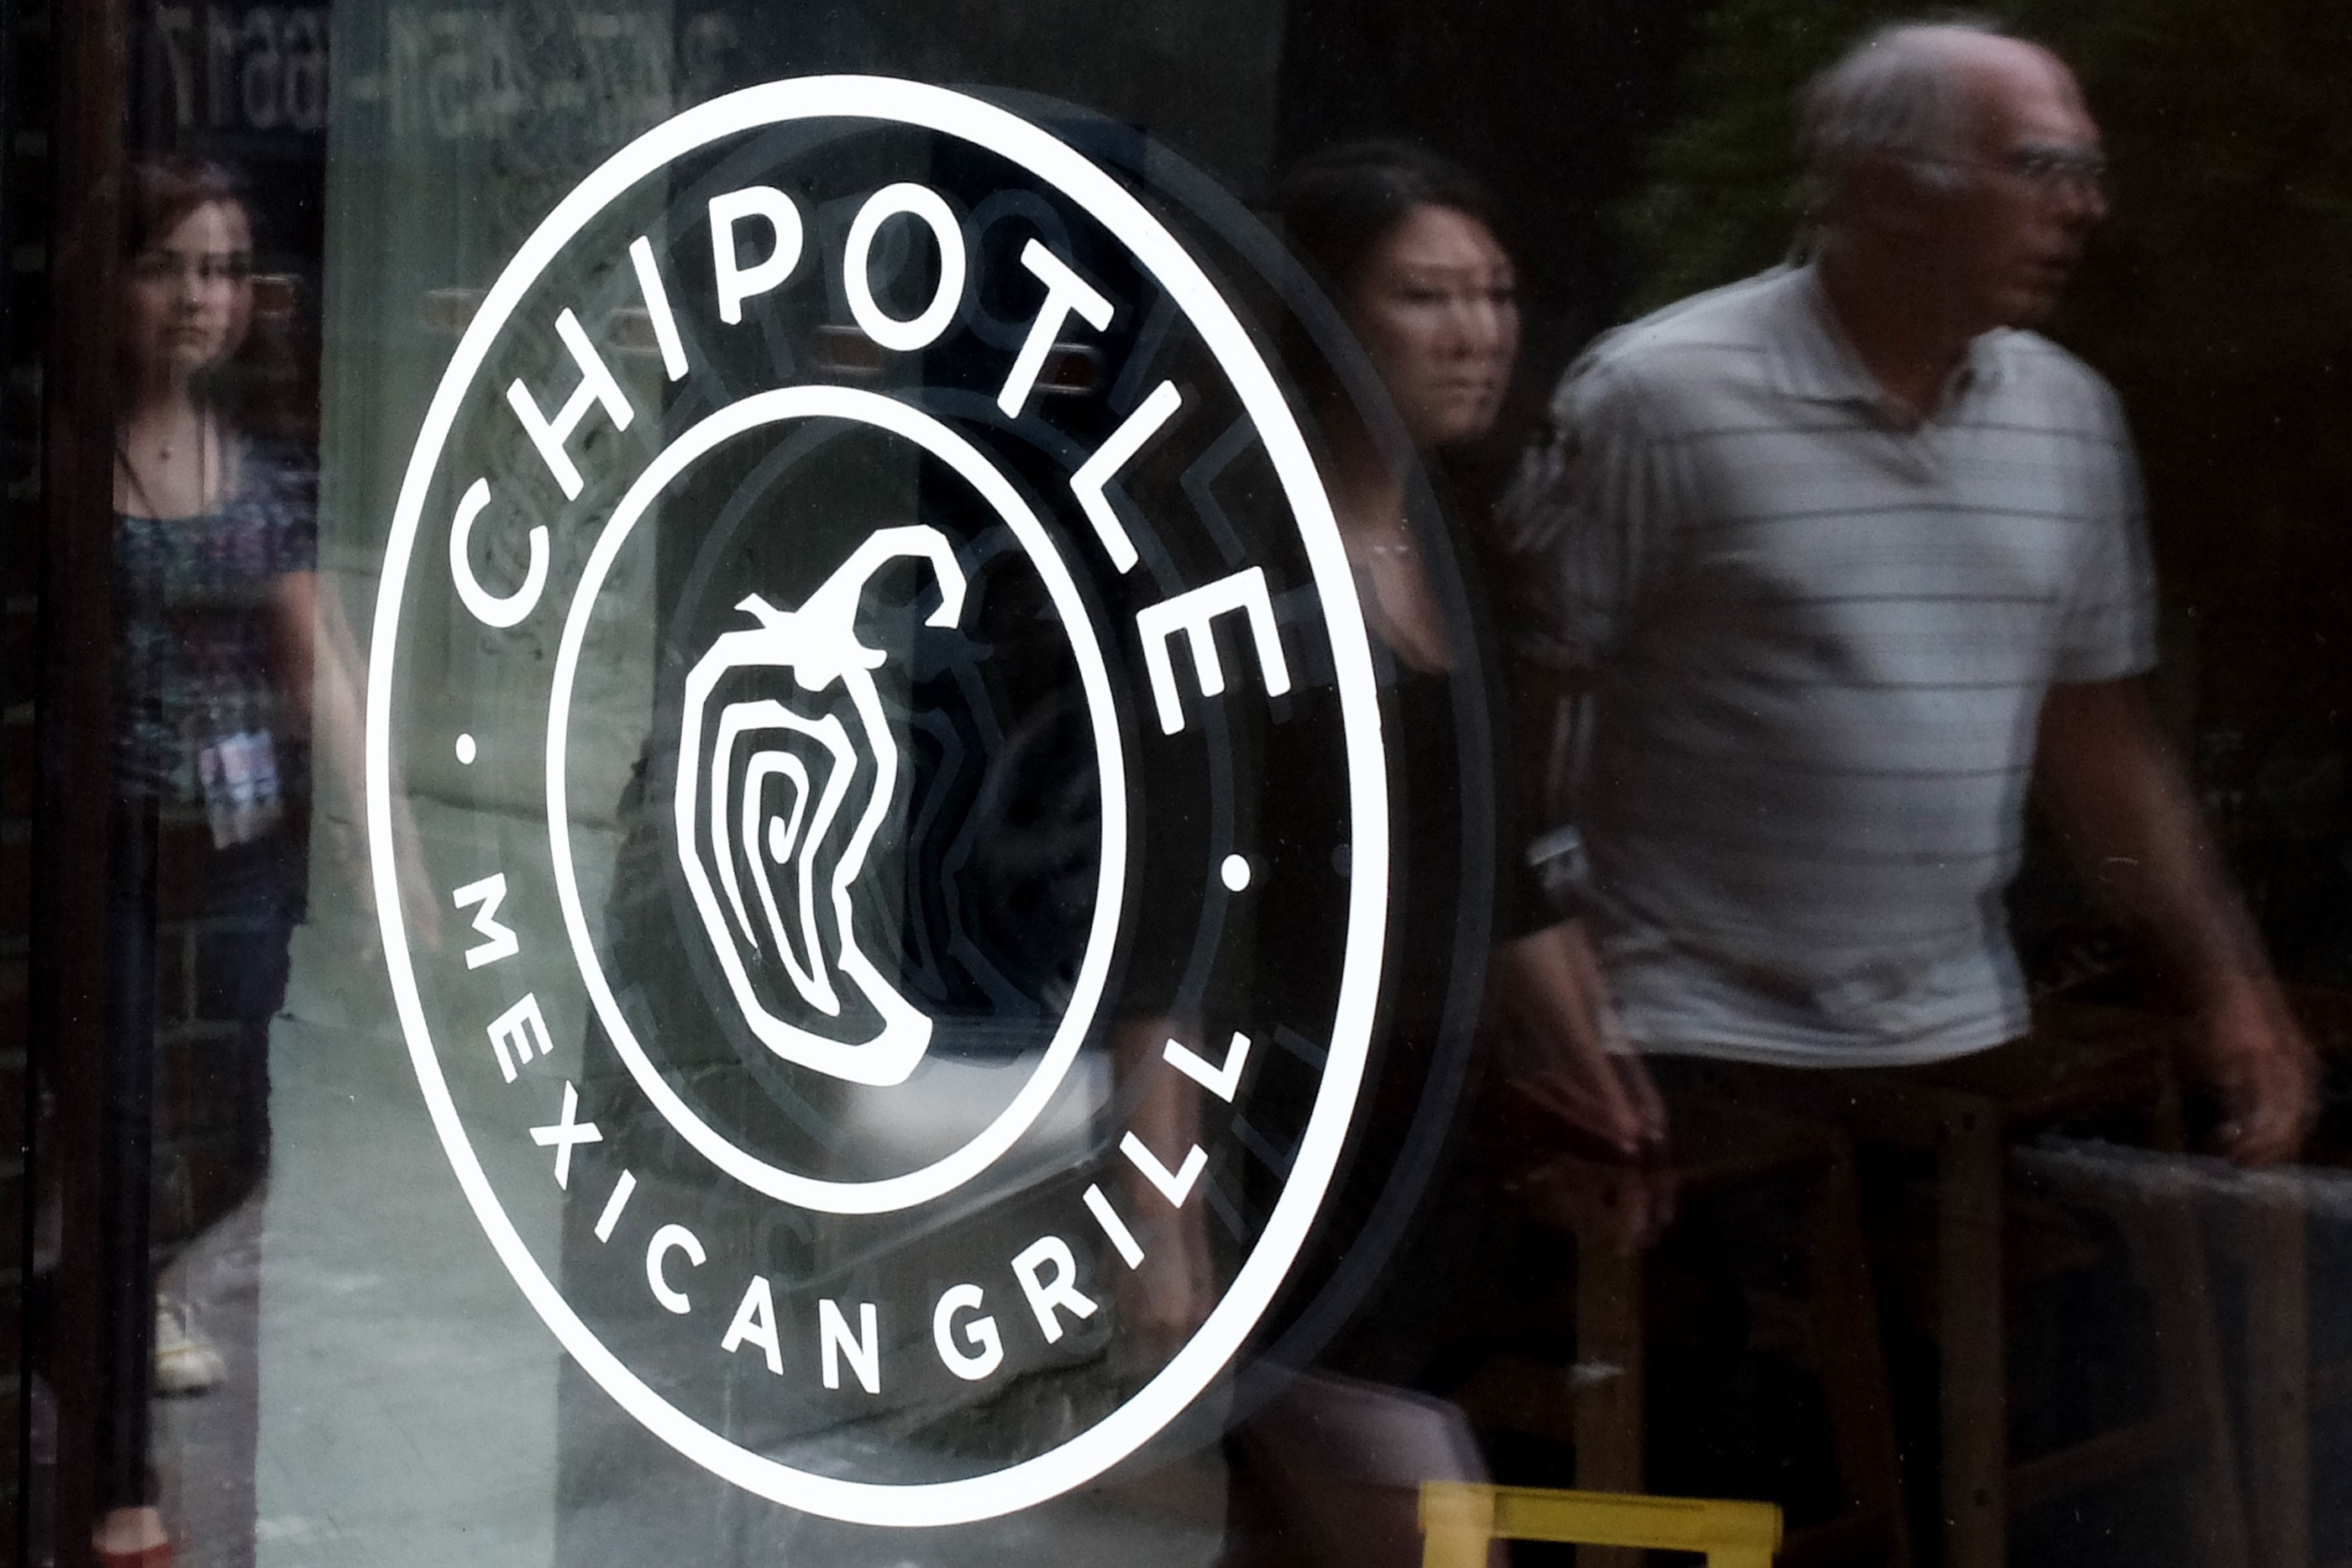 People pass walk by a Chipotle Restaurant  in Manhattan on September 11, 2015 in New York.